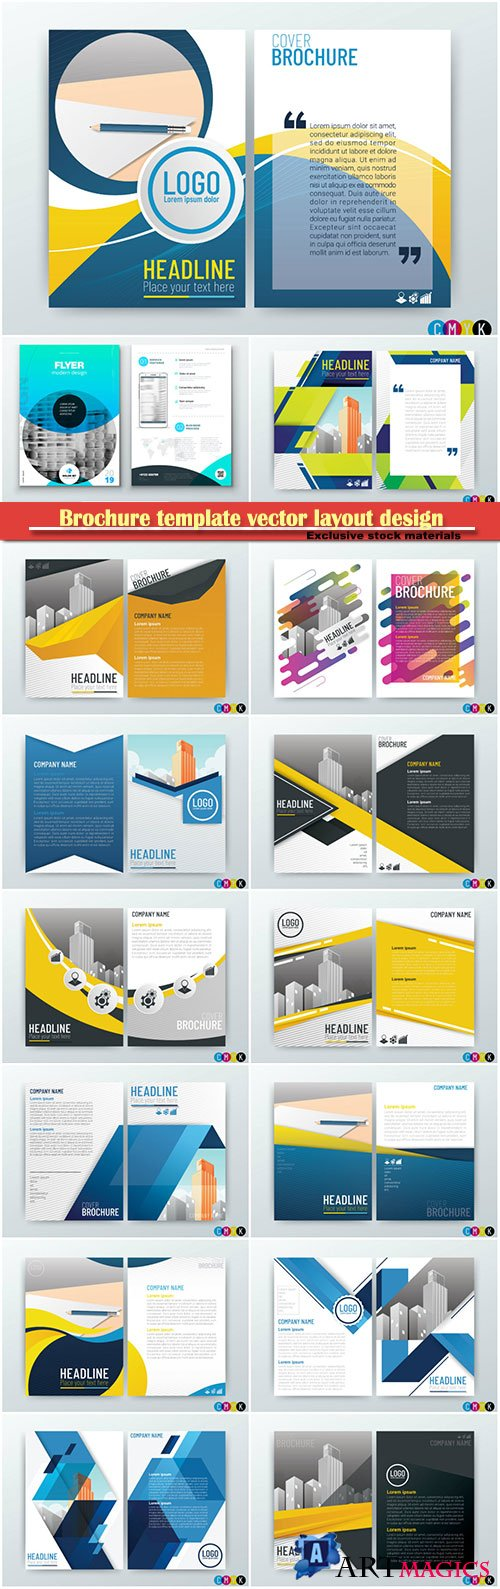 Brochure template vector layout design, corporate business annual report, magazine, flyer mockup # 154